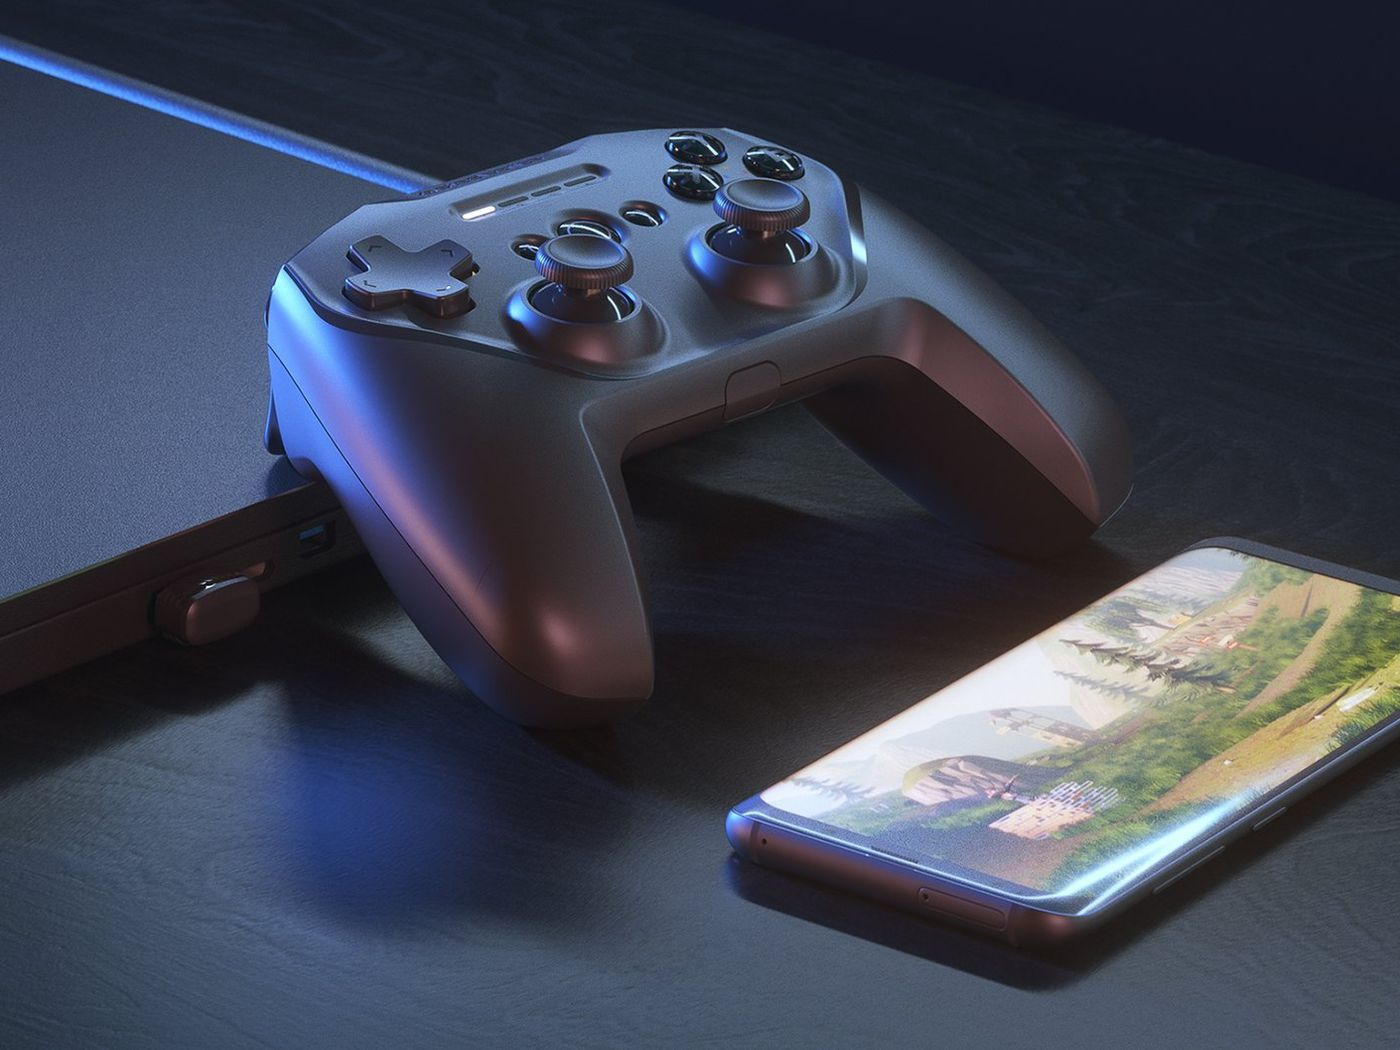 SteelSeries' new Stratus Duo mobile controller is here and